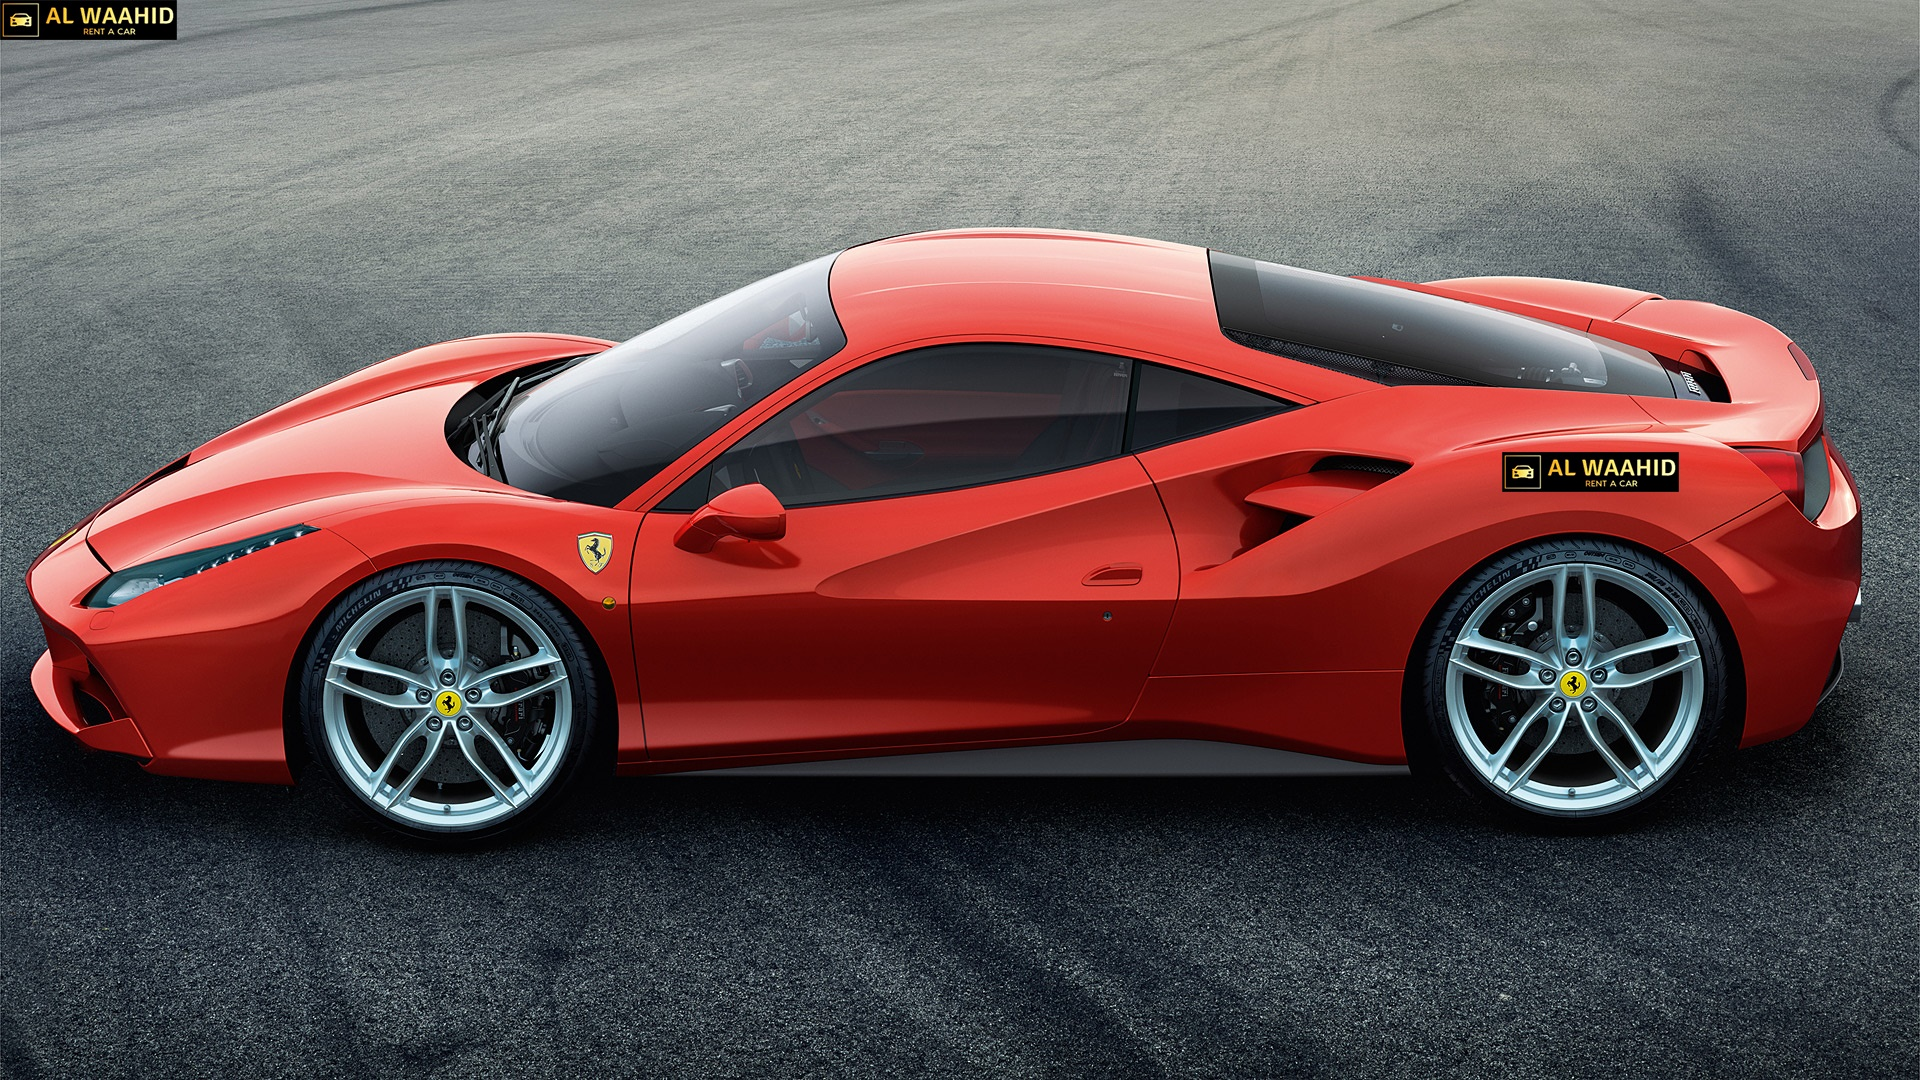 FERRARI 488 GTB luxury car rental dubai